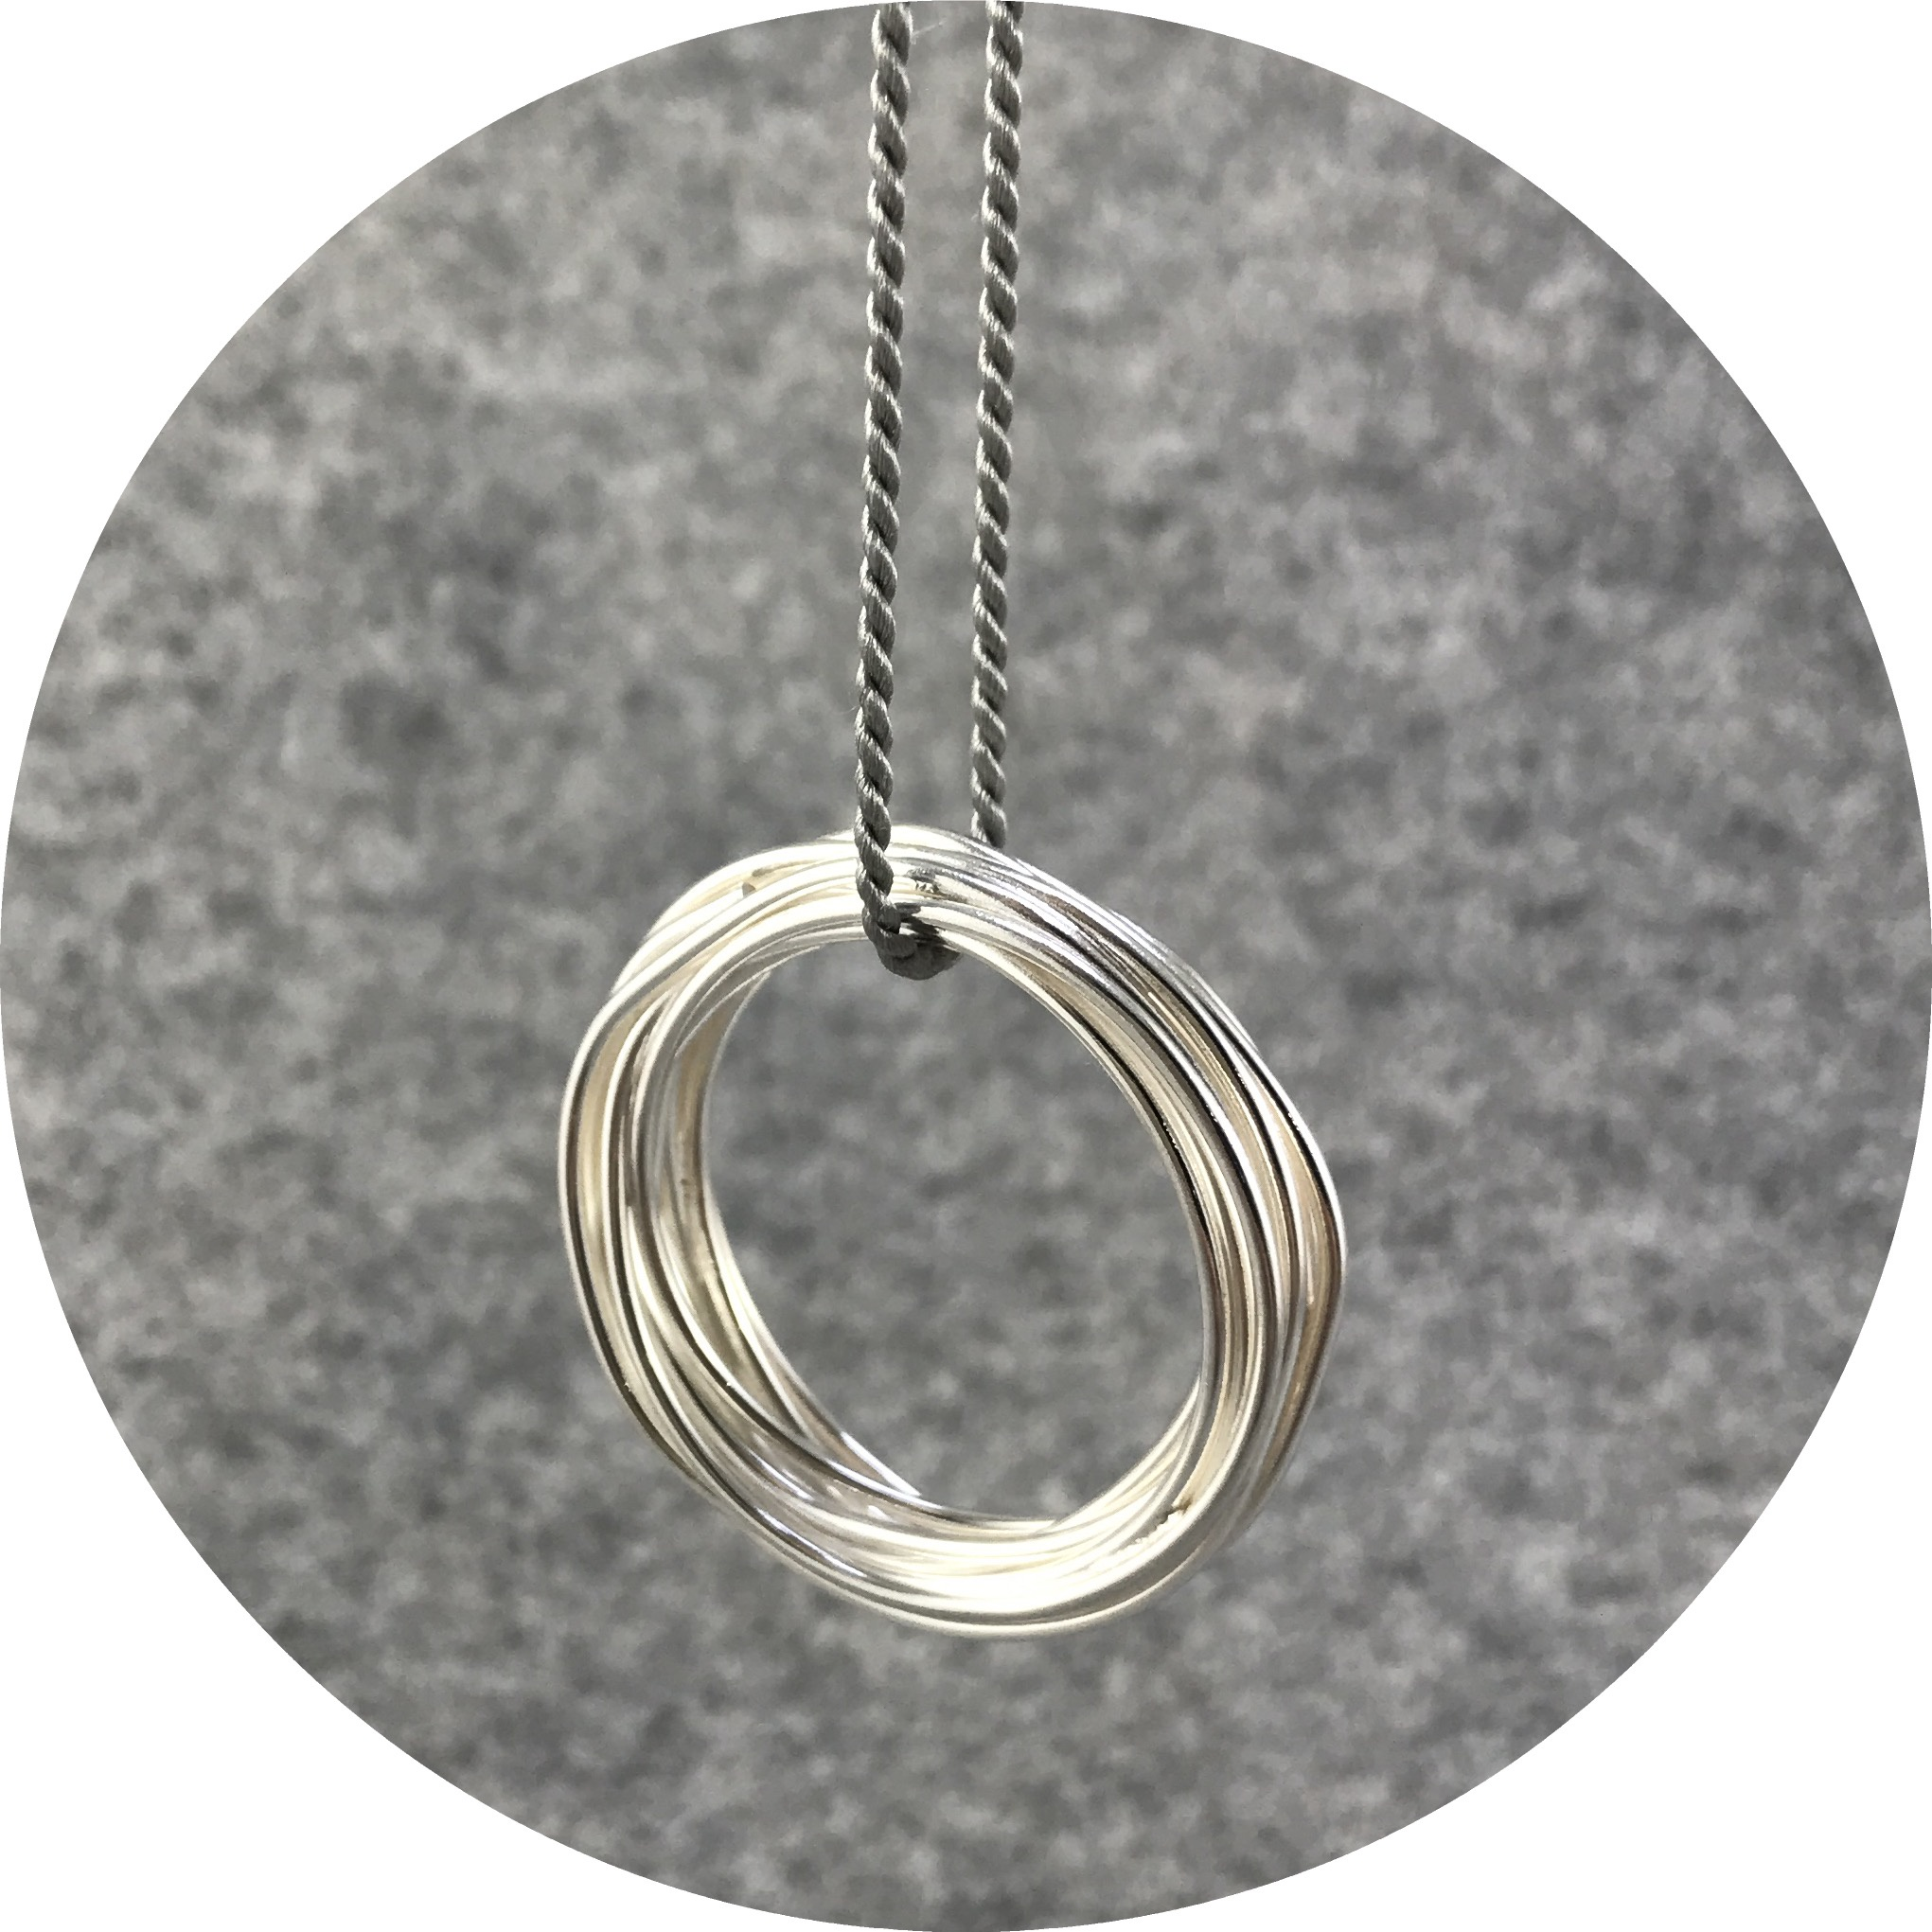 Melissa Gillespie - 'Continuous Circle Pendant on Grey Cord', sterling silver, silk cord